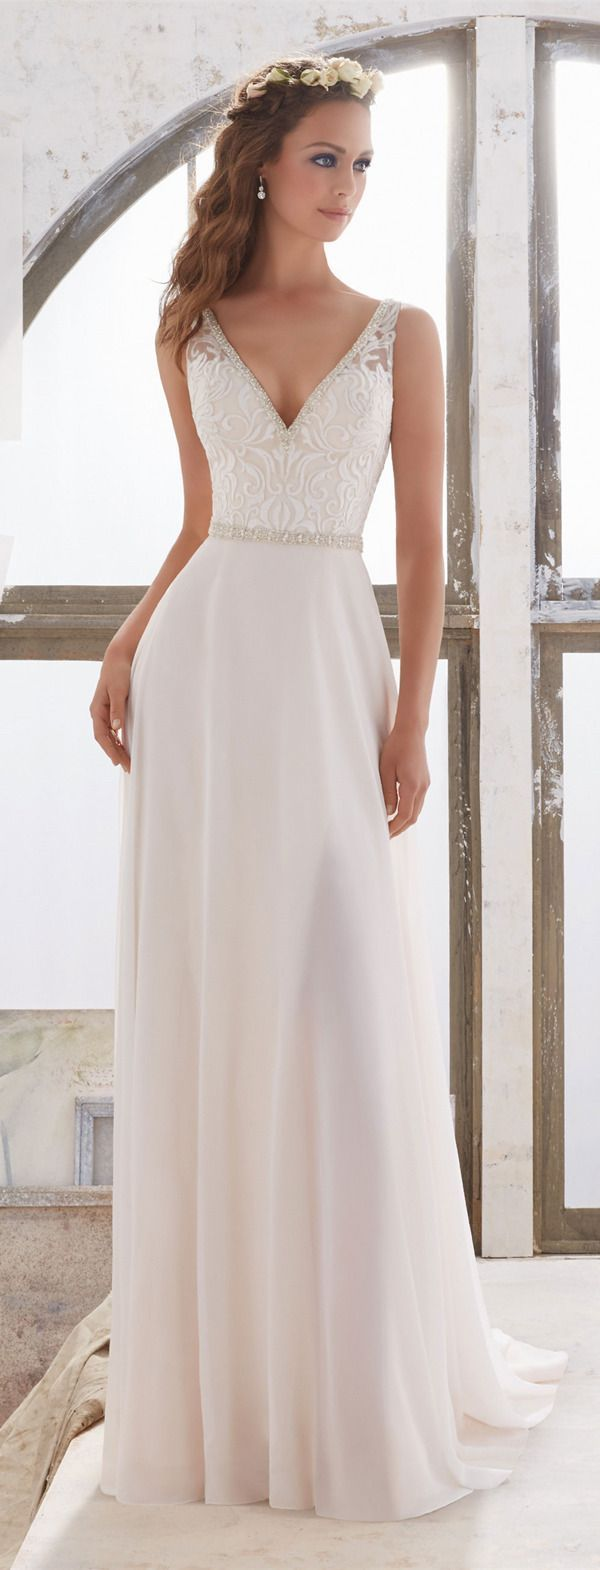 Simple Dresses for Weddings